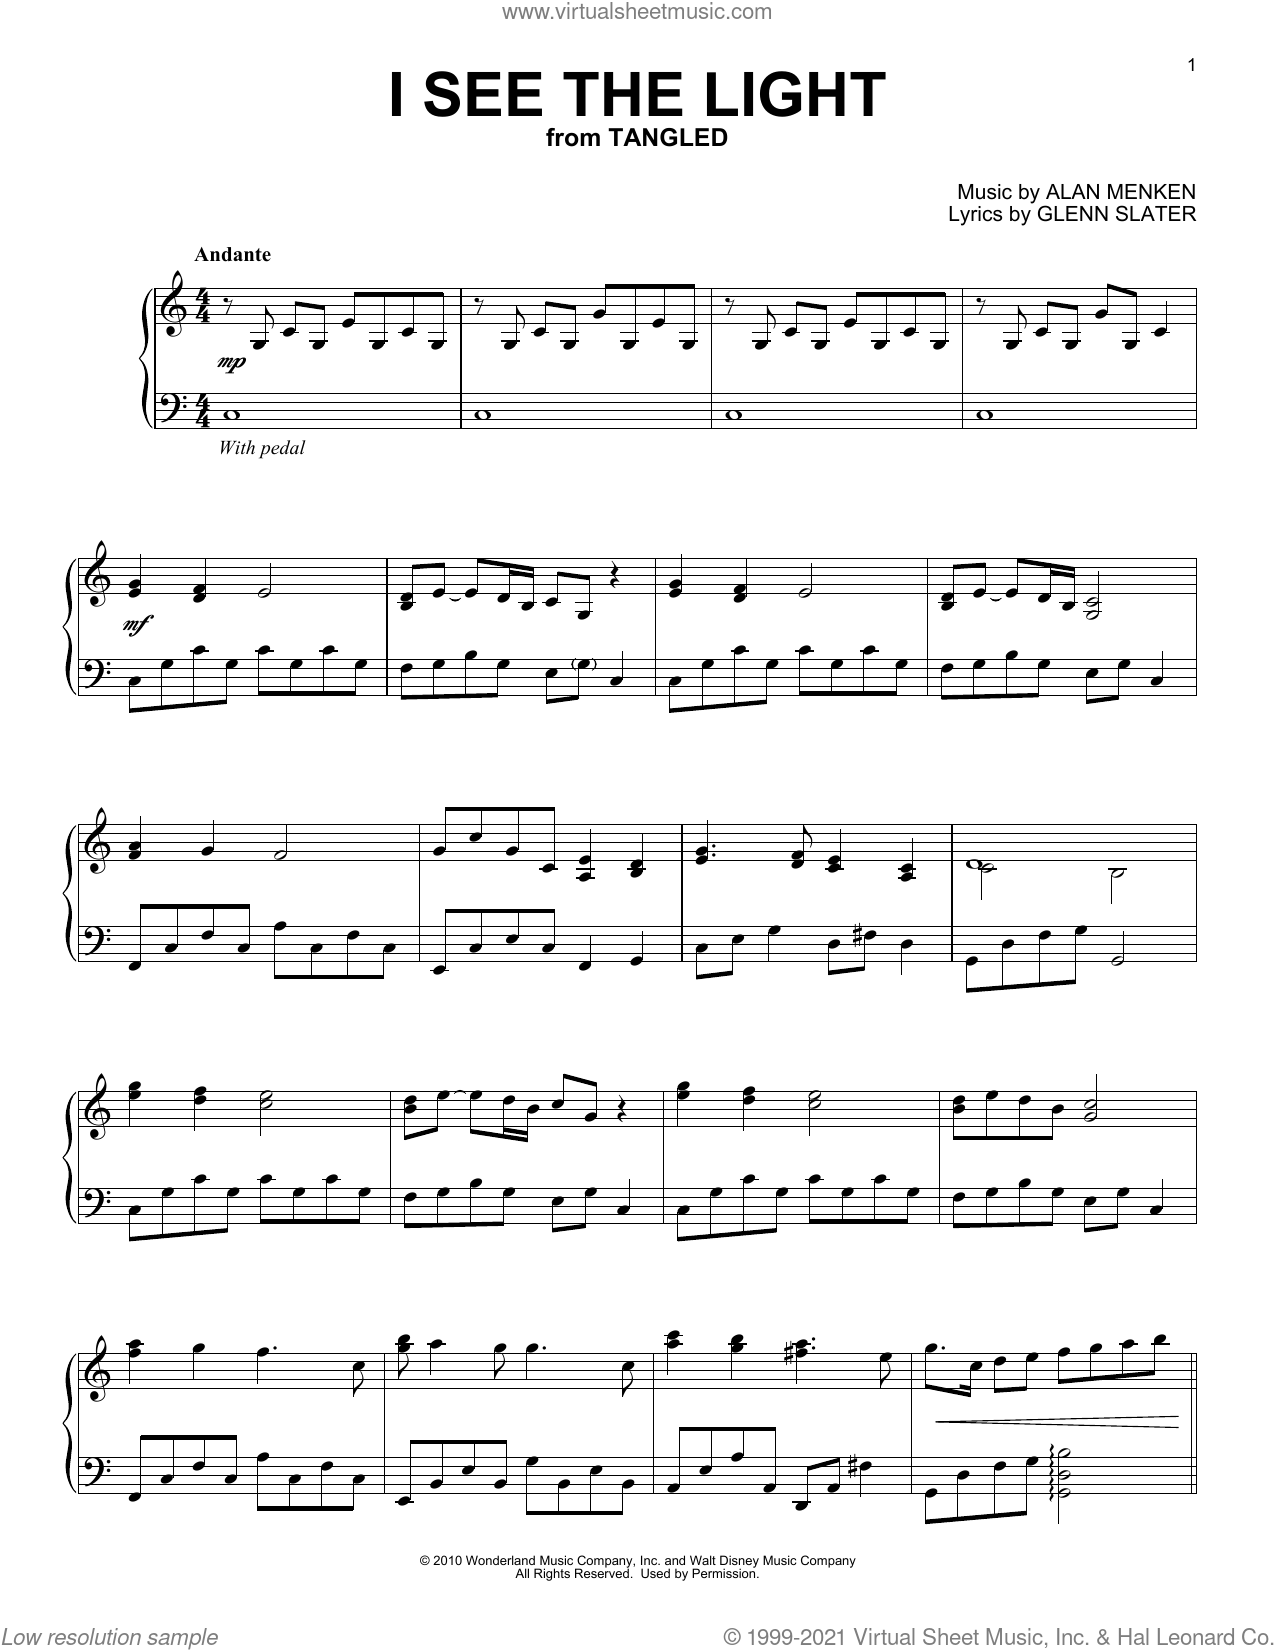 I See The Light (from Tangled) [Classical version] sheet music for piano solo by Alan Menken and Glenn Slater, classical score, intermediate skill level